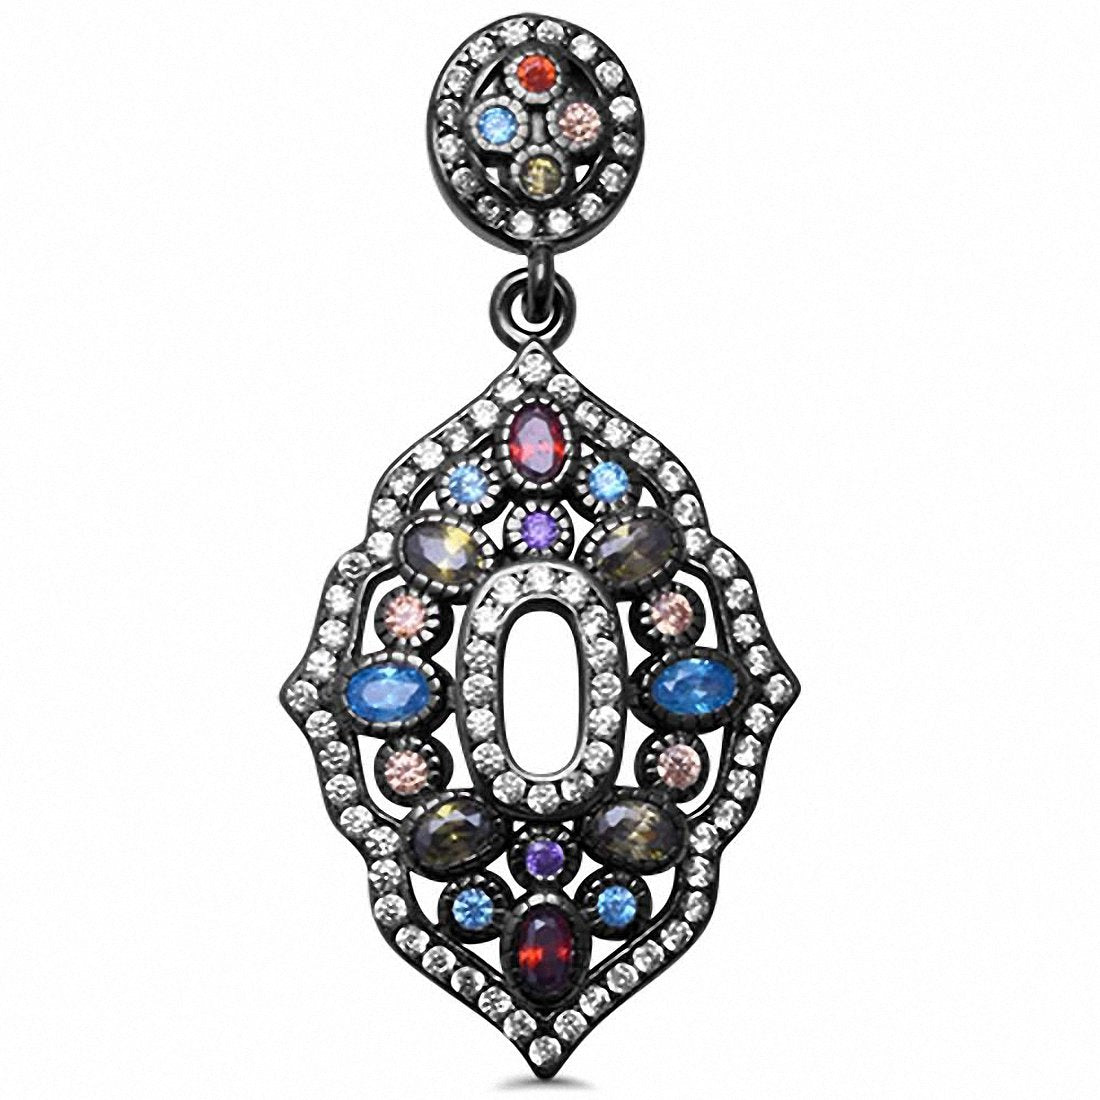 Black Tone Multicolored & CZ Pendant 925 Sterling Silver Choose Color